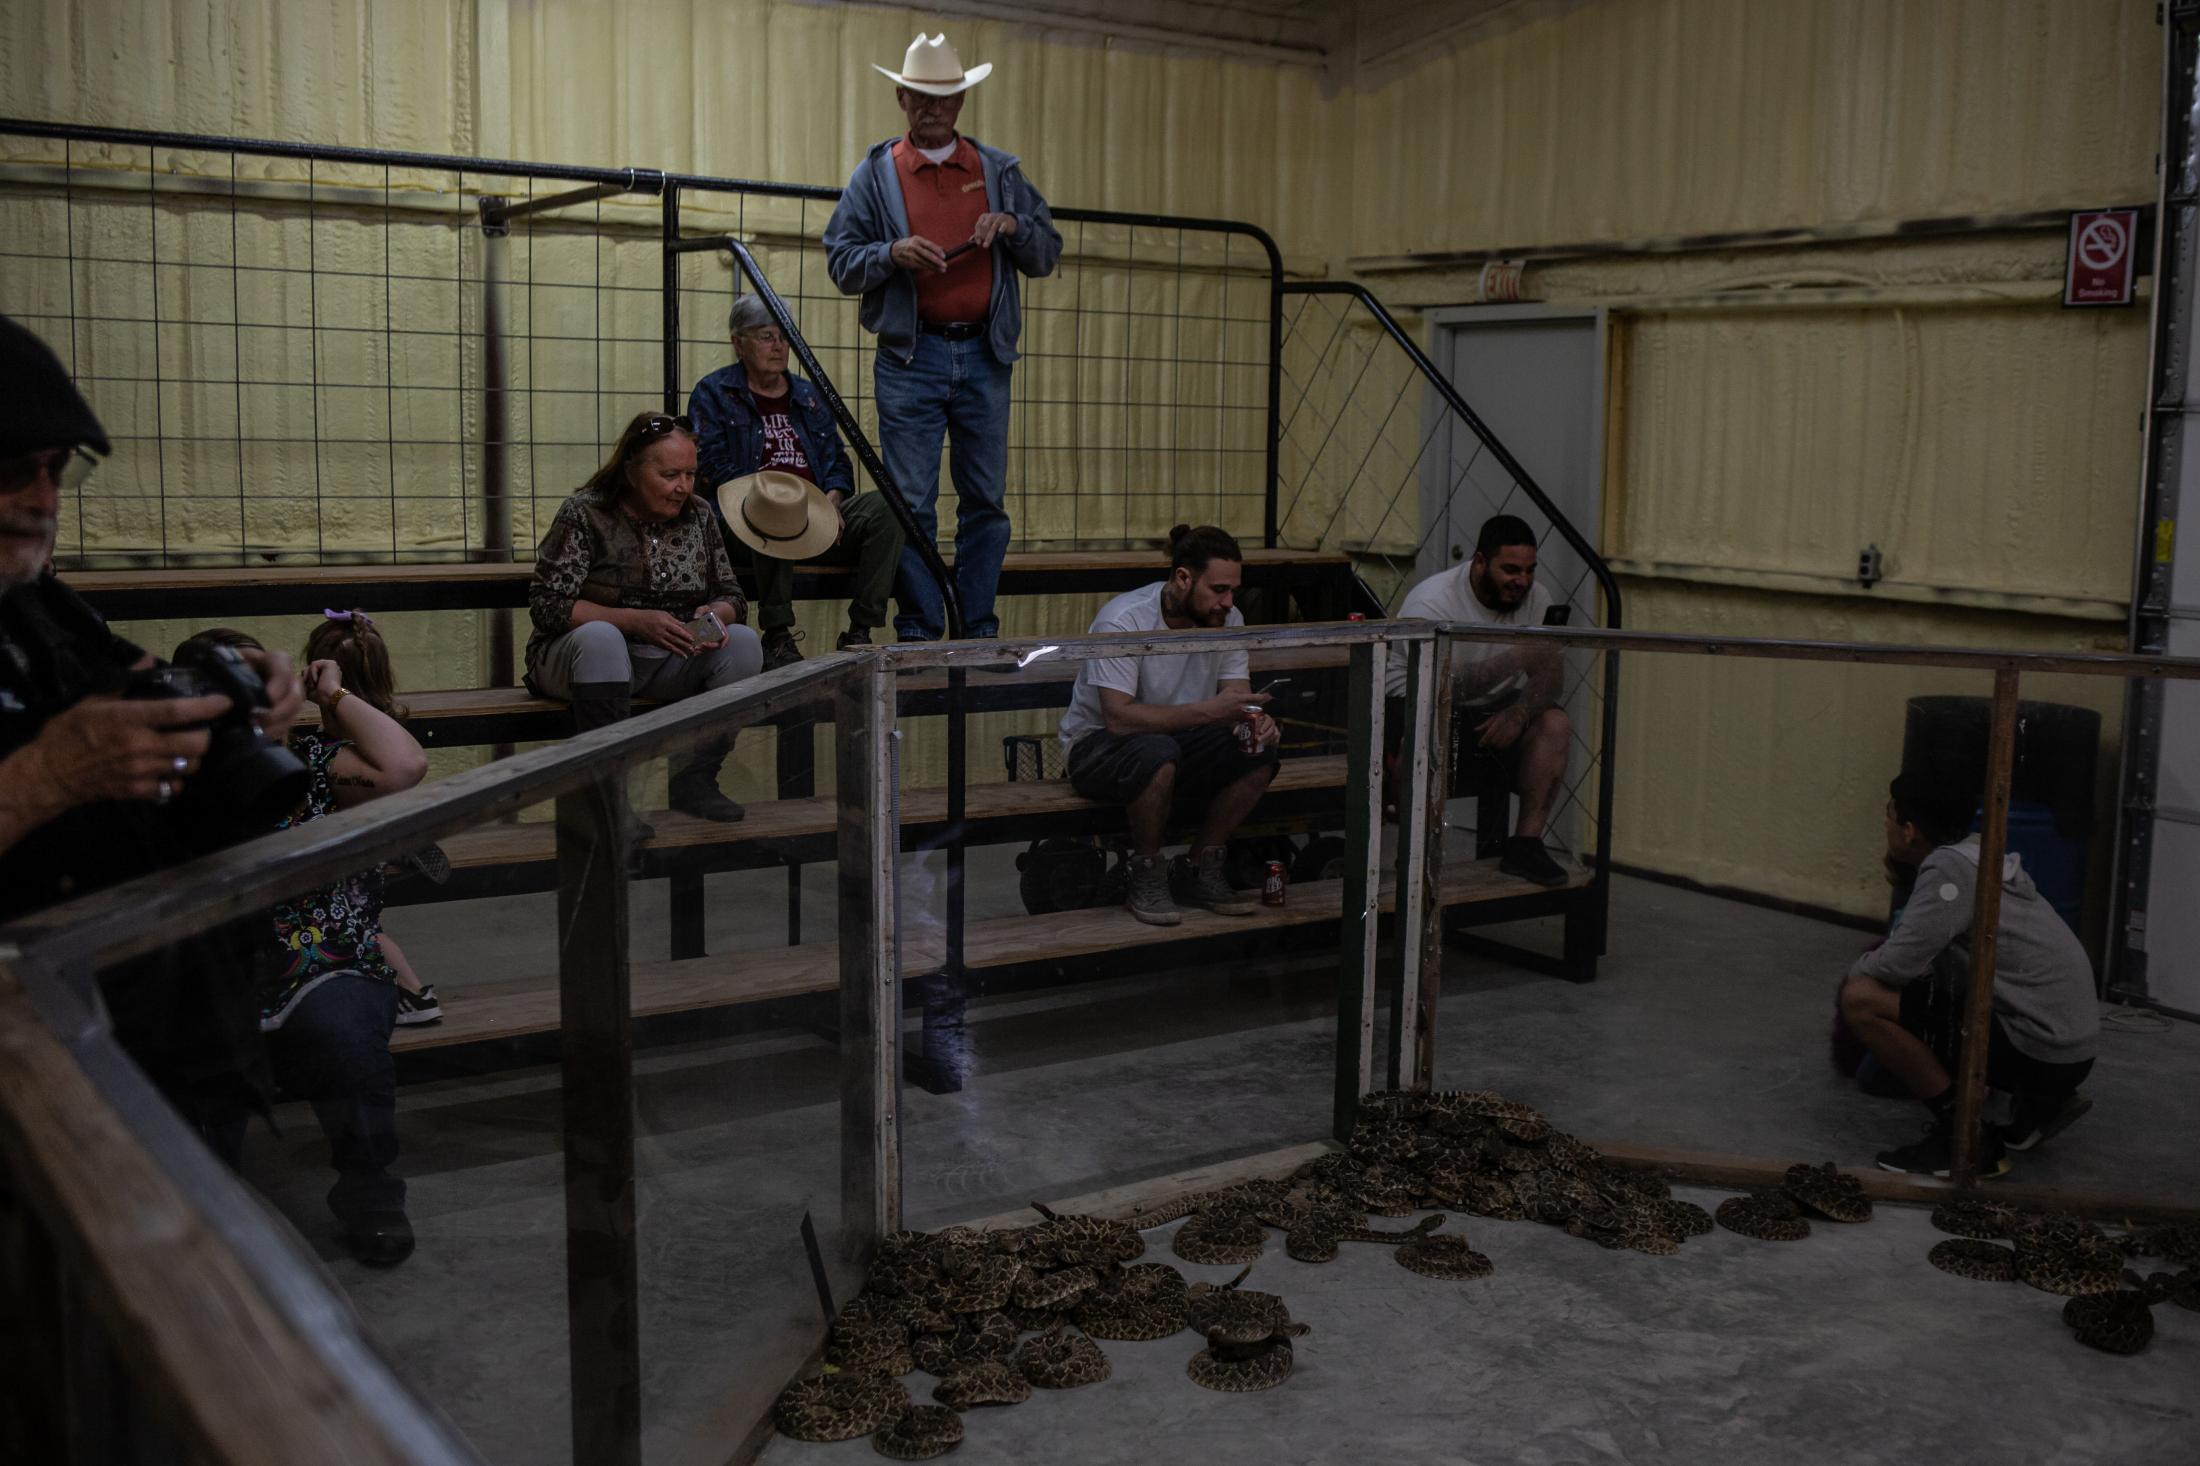 The Sweetwater Rattlesnake Roundup was created to keep control of the growing number of rattlesnakes that call home to farmlands, pasters, and cattle ranches. Every year rattlesnake hunters bring in thousands of snakes that will be killed, skinned, and sold on the market.